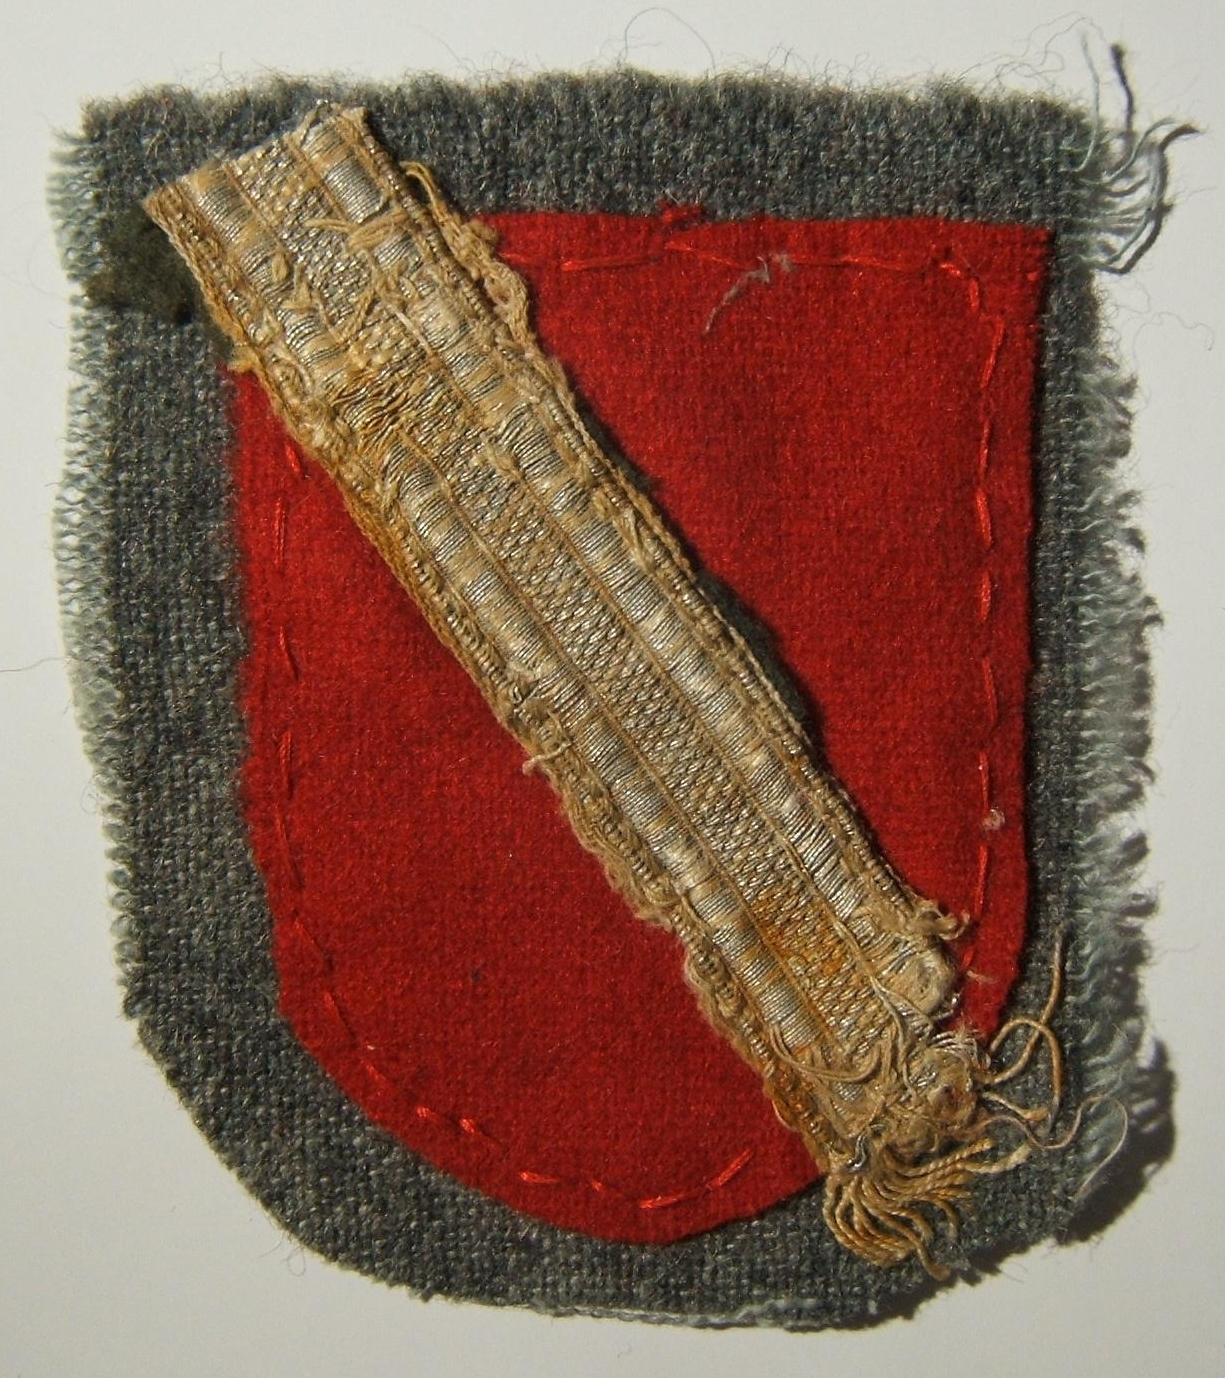 Handmade armshield of a Cossack force of the Wehrmacht: red cloth shield with diagonal silver tress across the field, still attached to the original 'waffenrock' swatch of the wear